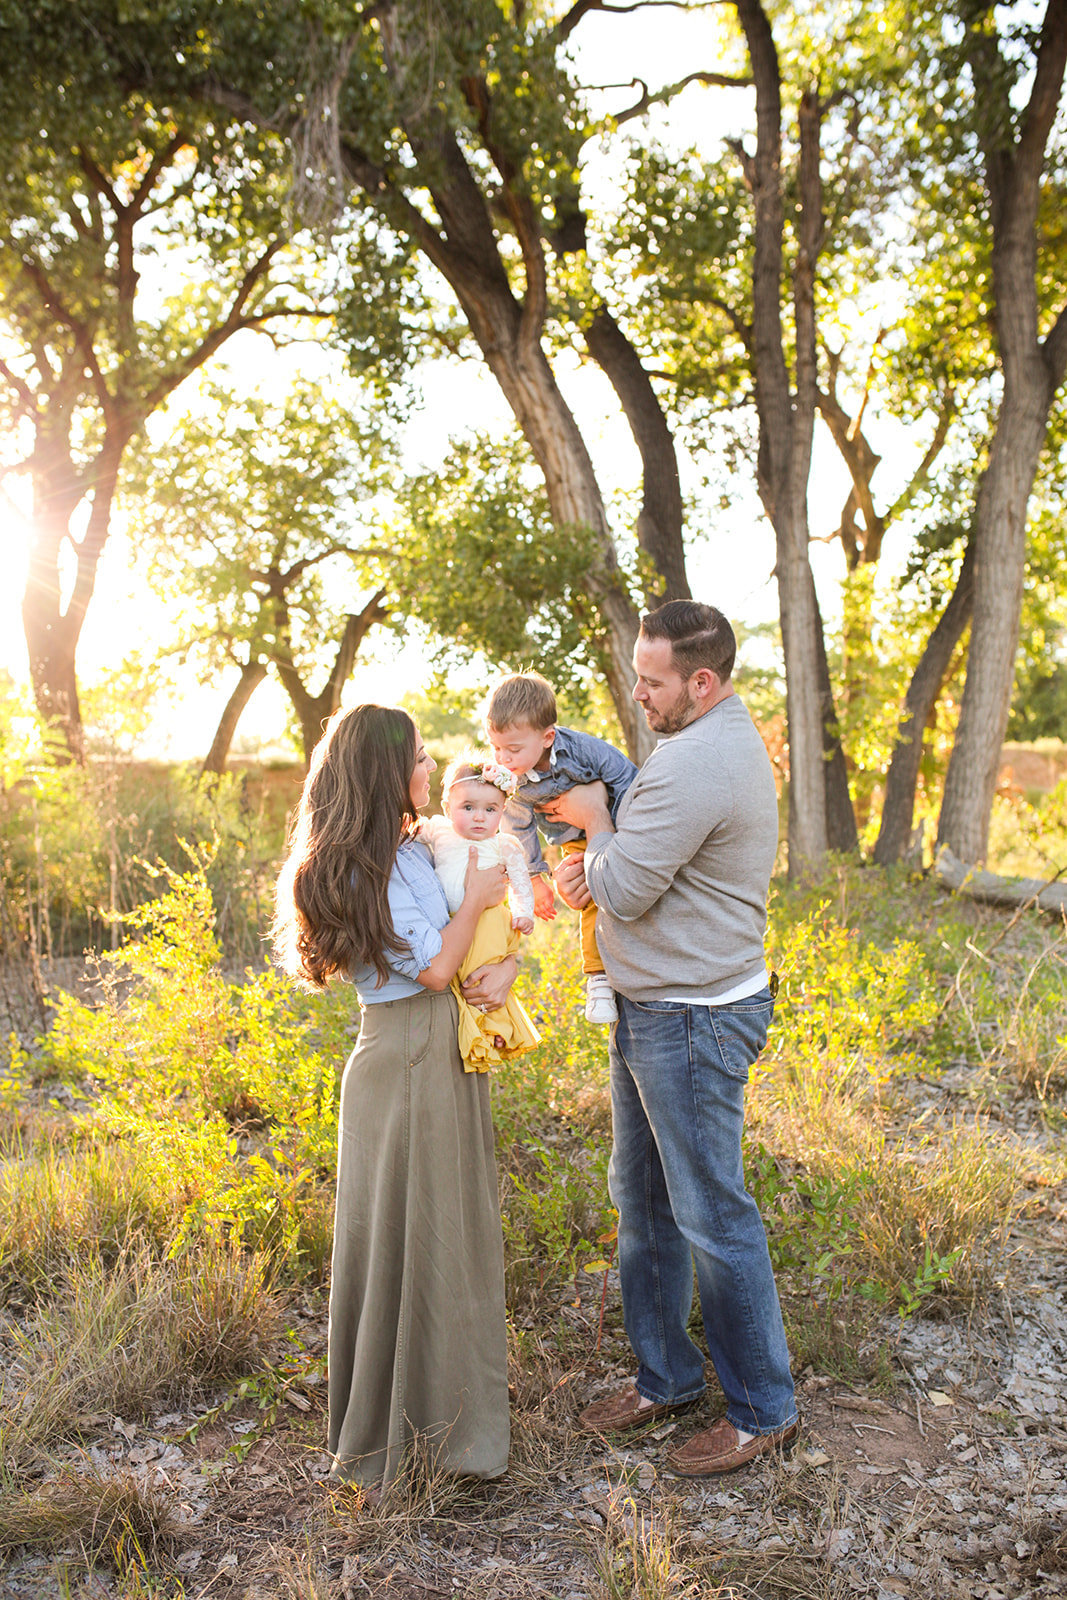 Albuquerque Family Photography_Bosque_www.tylerbrooke.com_Kate Kauffman_003